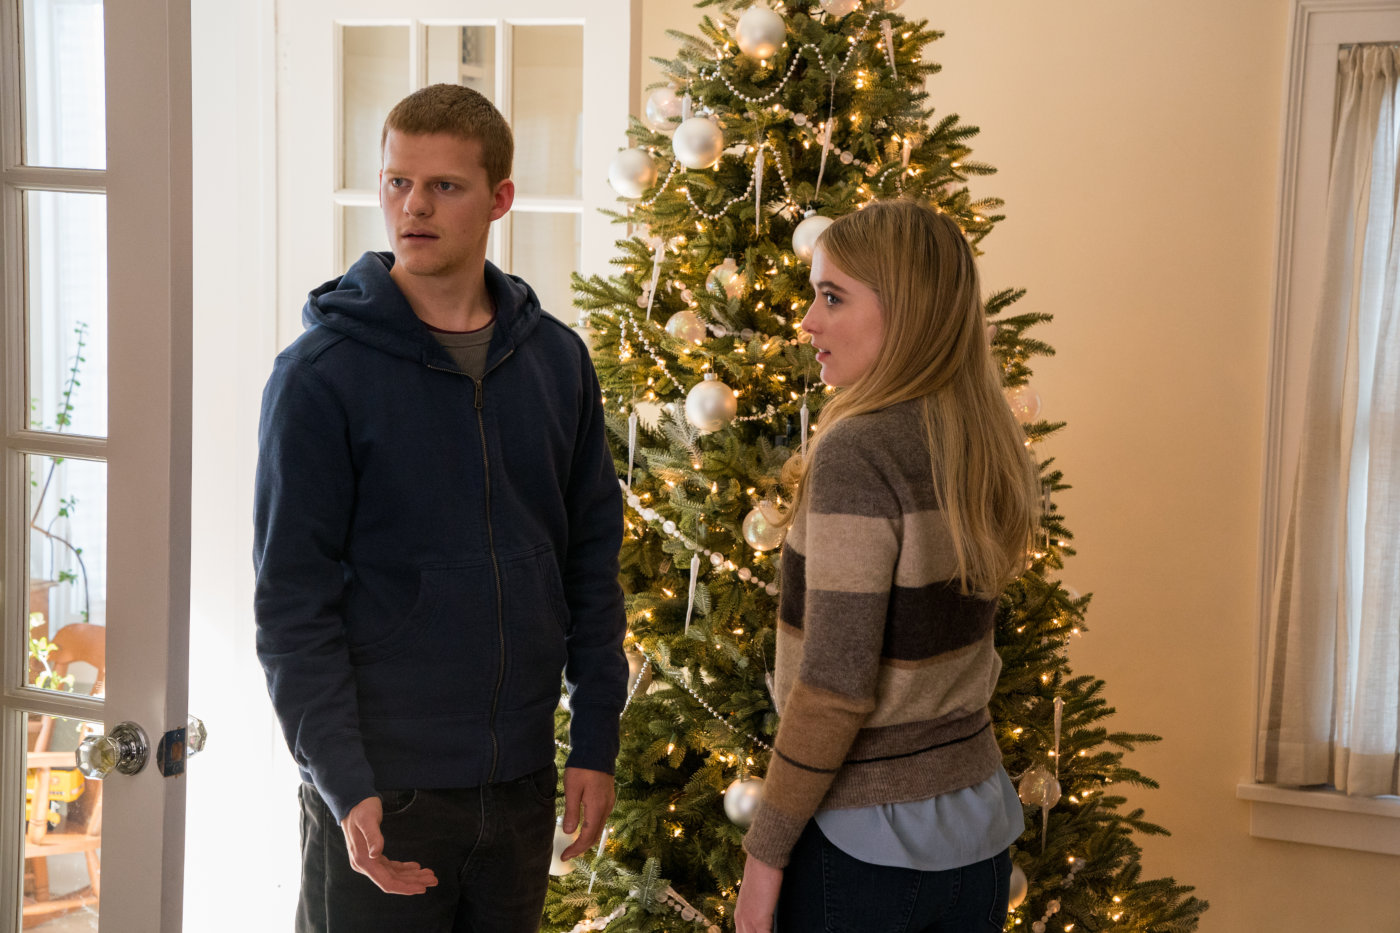 Kathryn Newton and Lucas Hedges in Ben Is Back (2018)